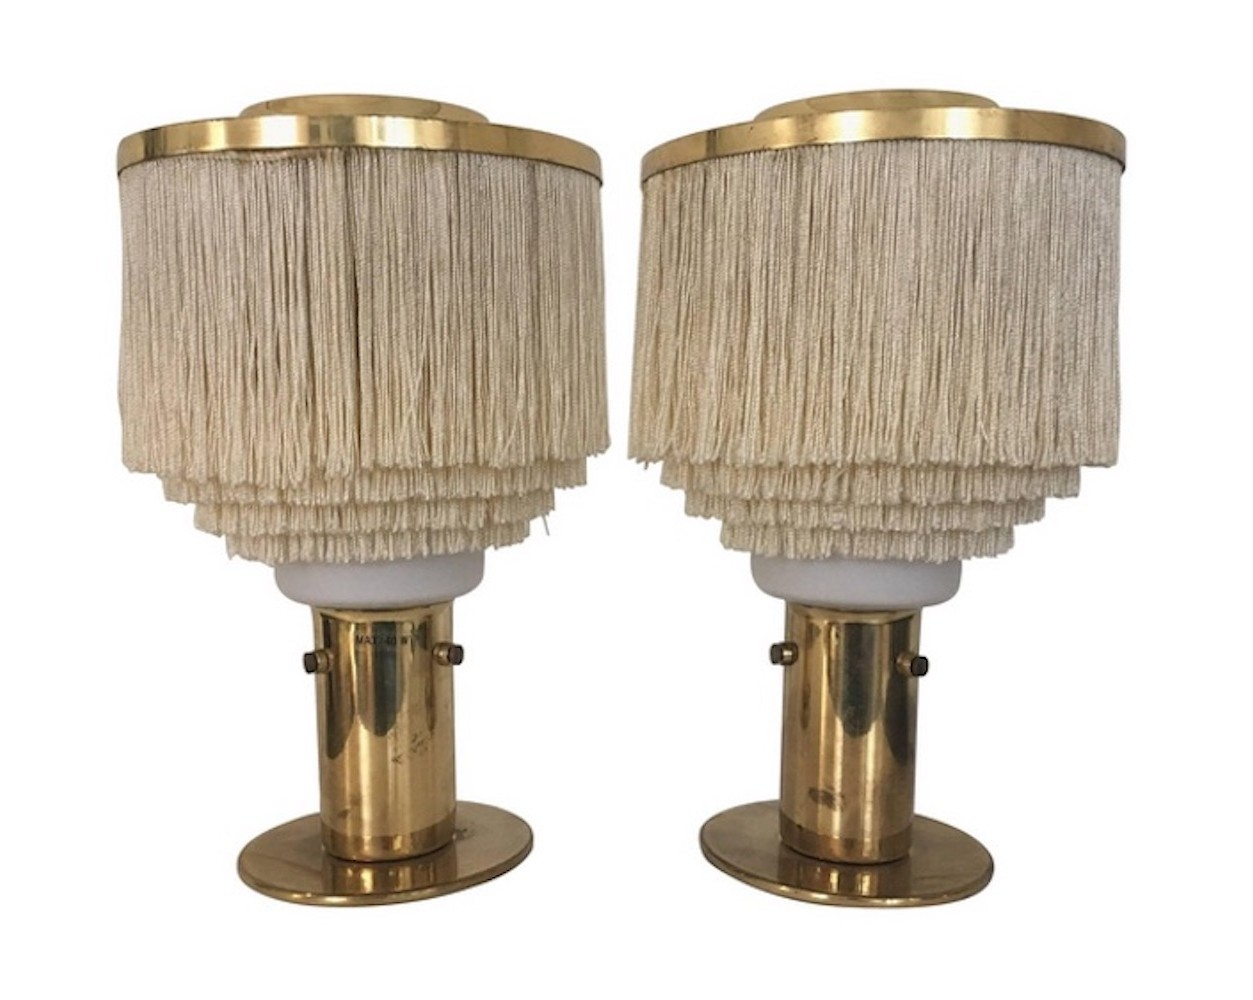 Pair of fringed hans agne jakobsson table lamps model b 145 74557 pair of fringed hans agne jakobsson table lamps model b 145 mozeypictures Gallery